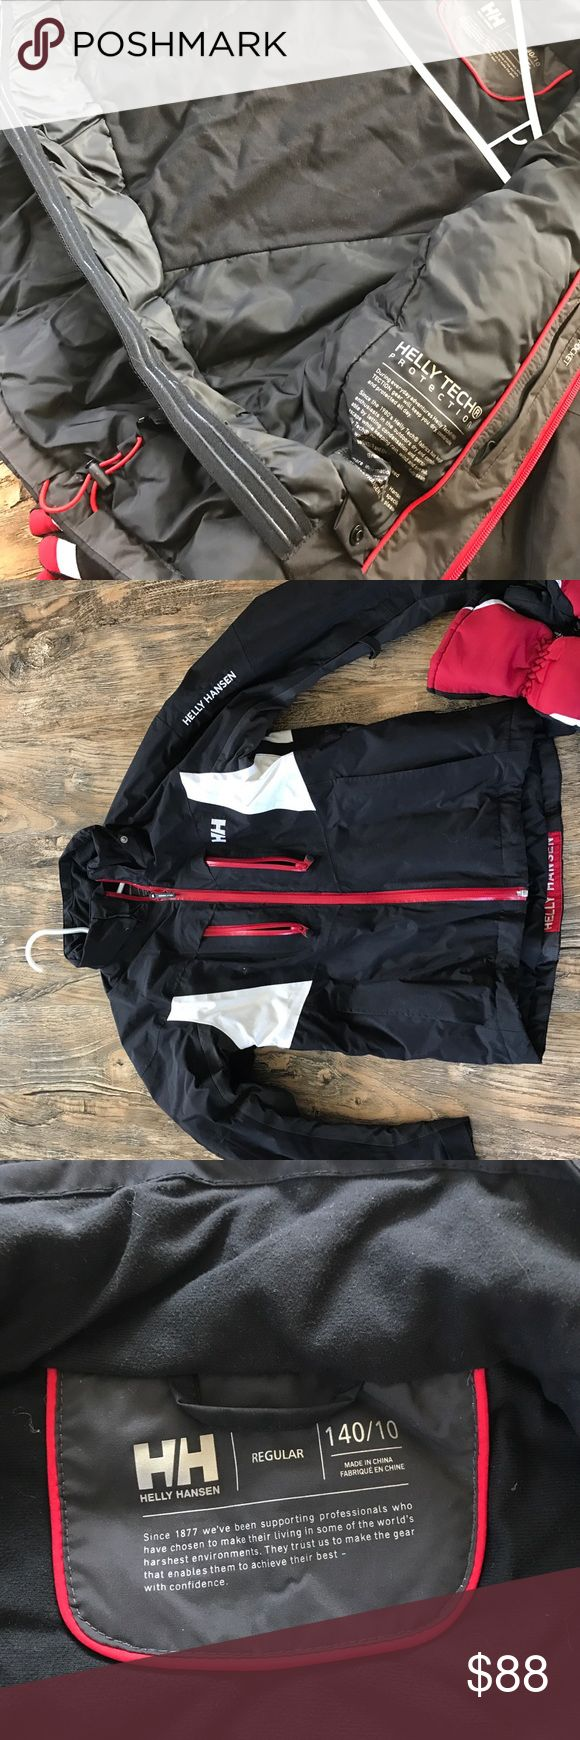 Helly Hansen Youth Ski Jacket Ski Jacket, with Helly Tech® Performance technology with waterproof, breathable fabric combined with PrimaLoft® Black insulation.  Waterproof zippers, powder skirt, many pockets. Used only 3 times.  Will throw in the gloves. Helly Hansen Jackets & Coats